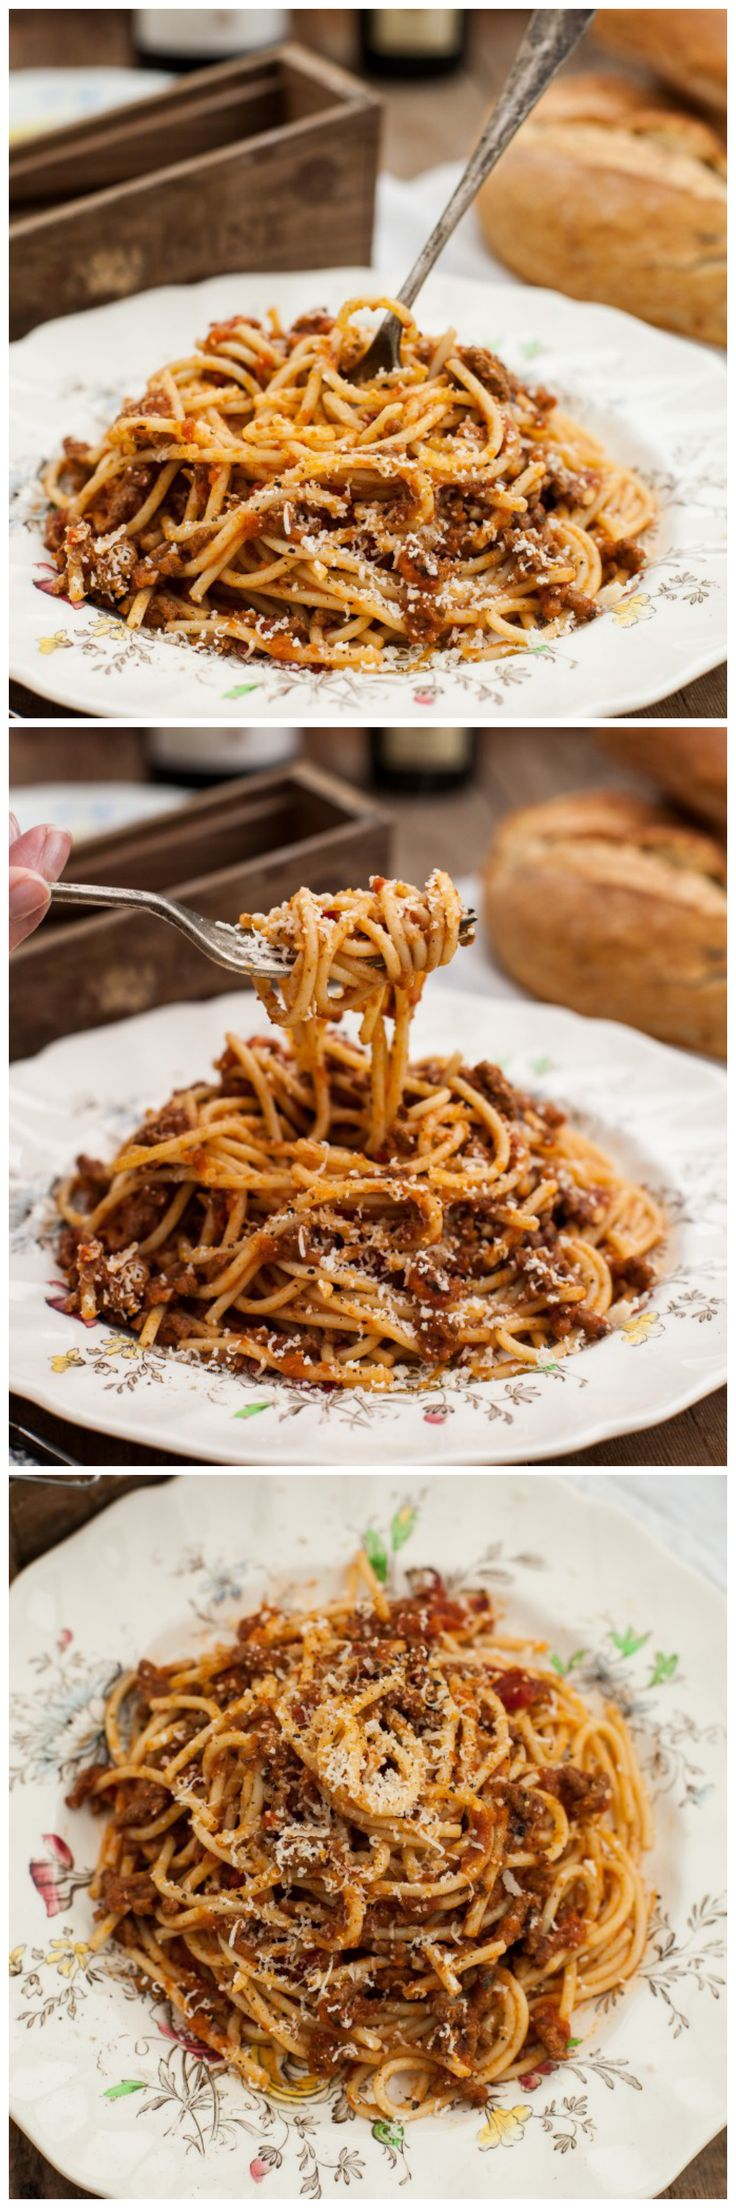 My FAVORITE Recipes: Spaghetti Bolognese - Vikalinka